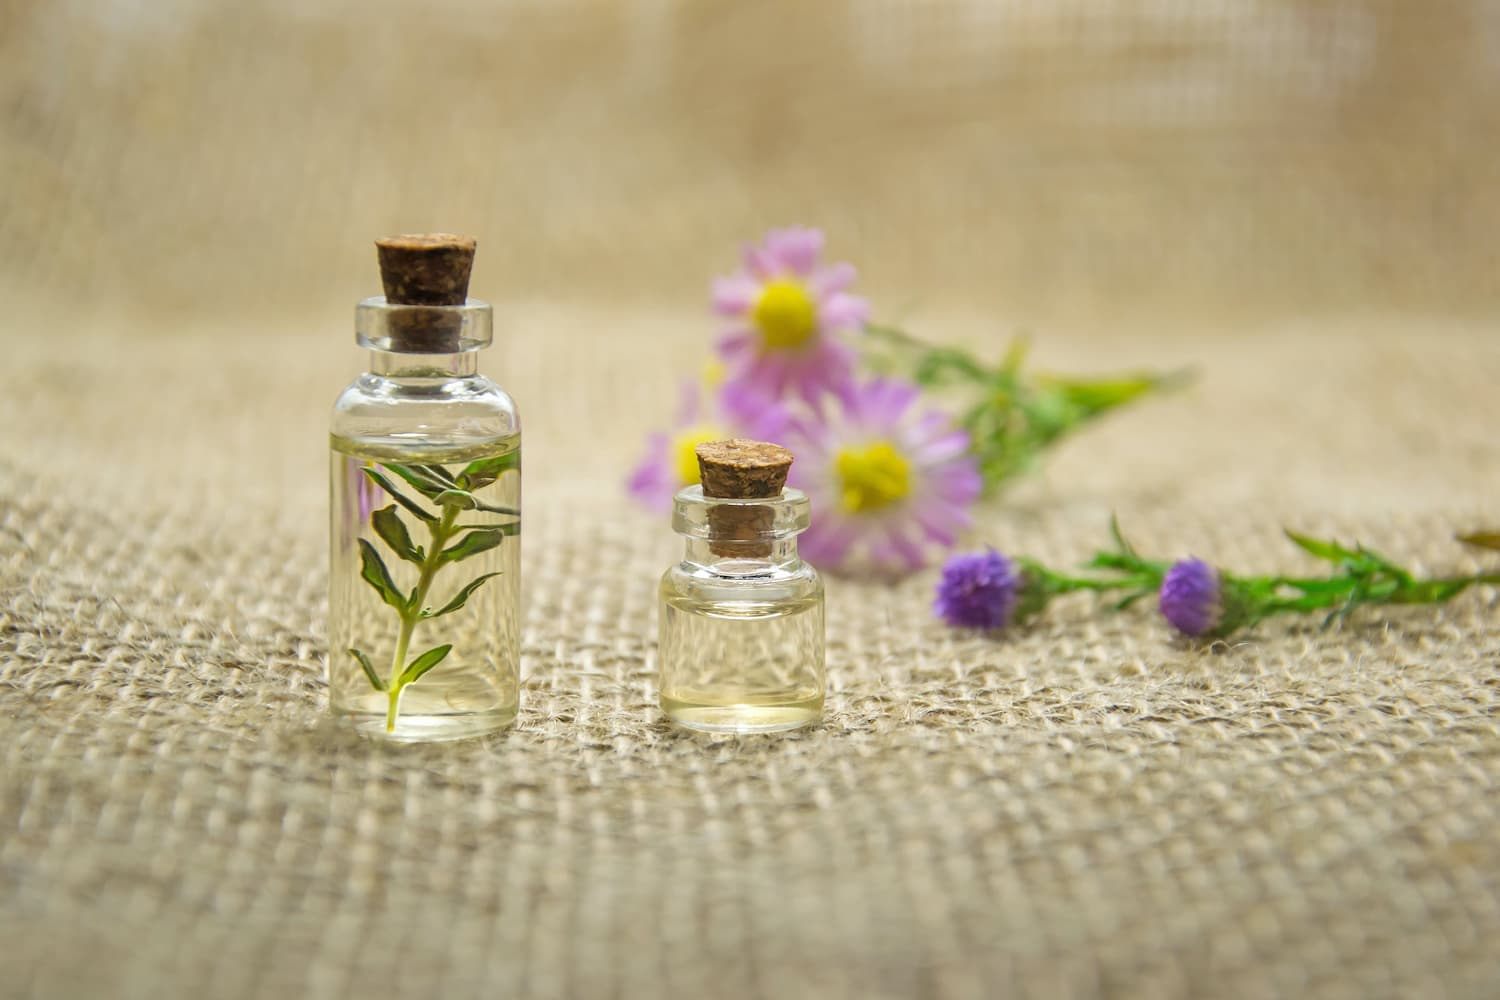 Materials & equipment you need to start an aromatherapy business